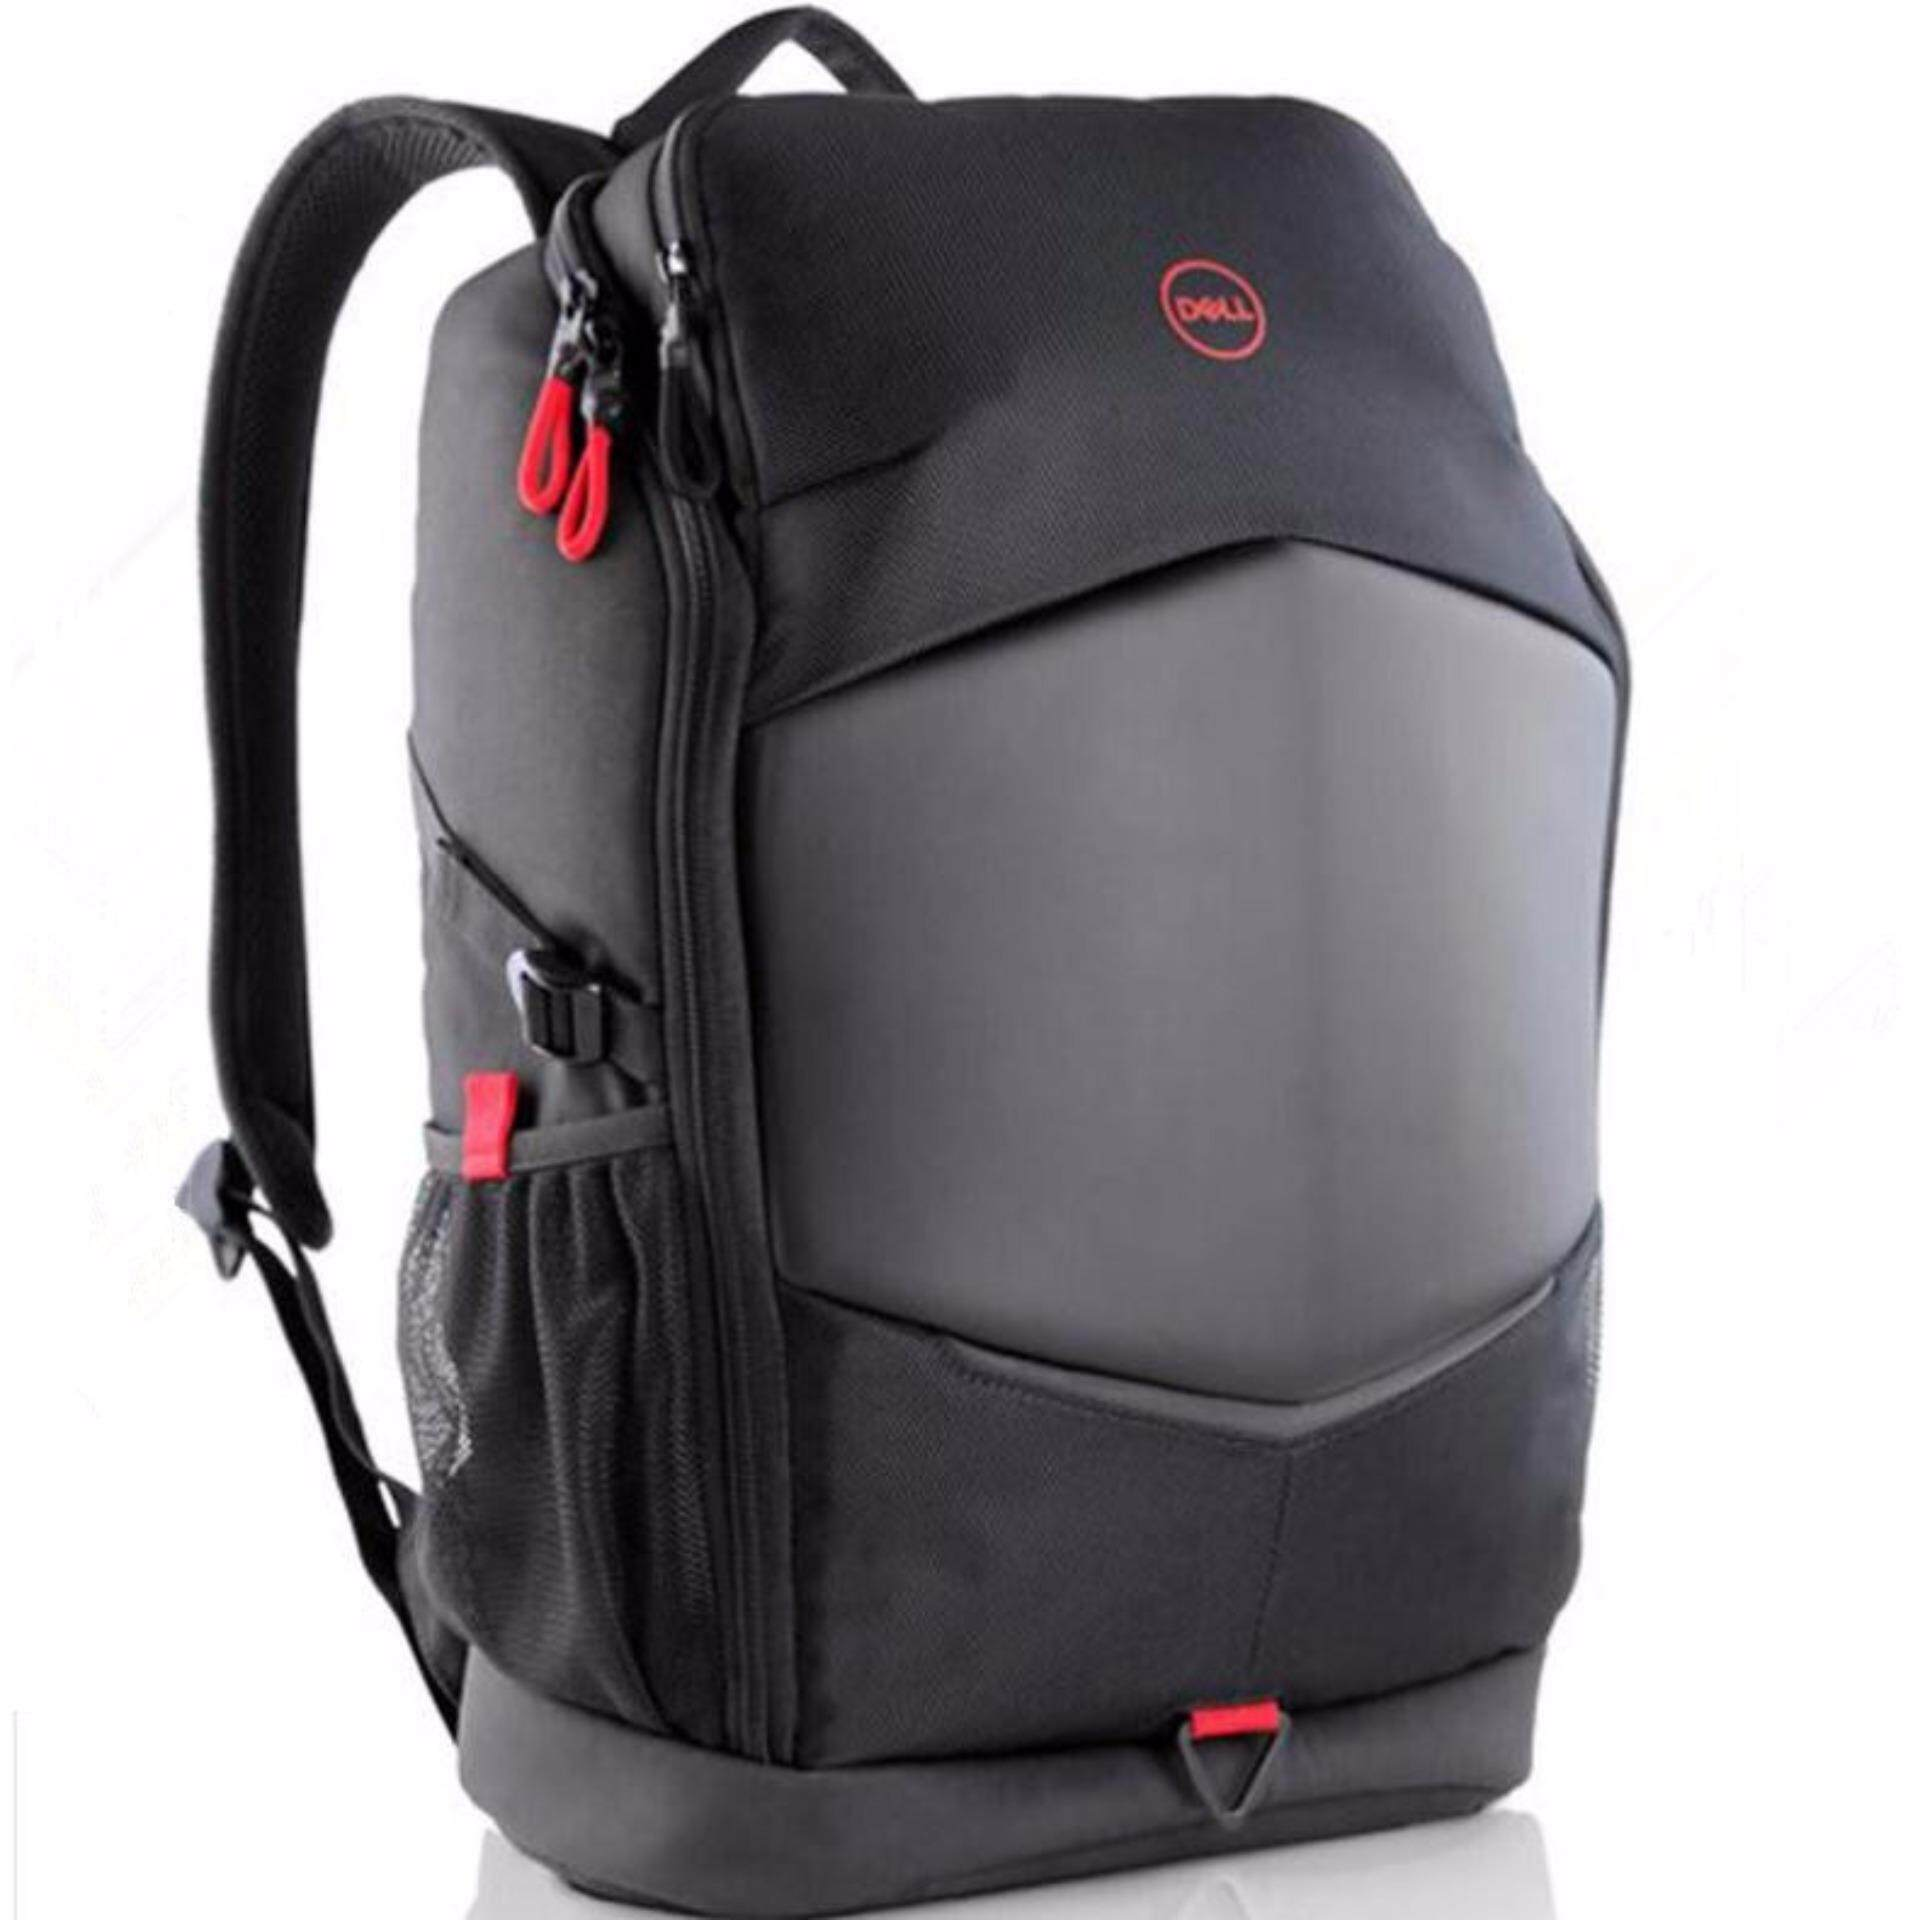 ซื้อ Leung Computers Gaming Backpack 15 02Wj63 New Arrival Intl ออนไลน์ ถูก